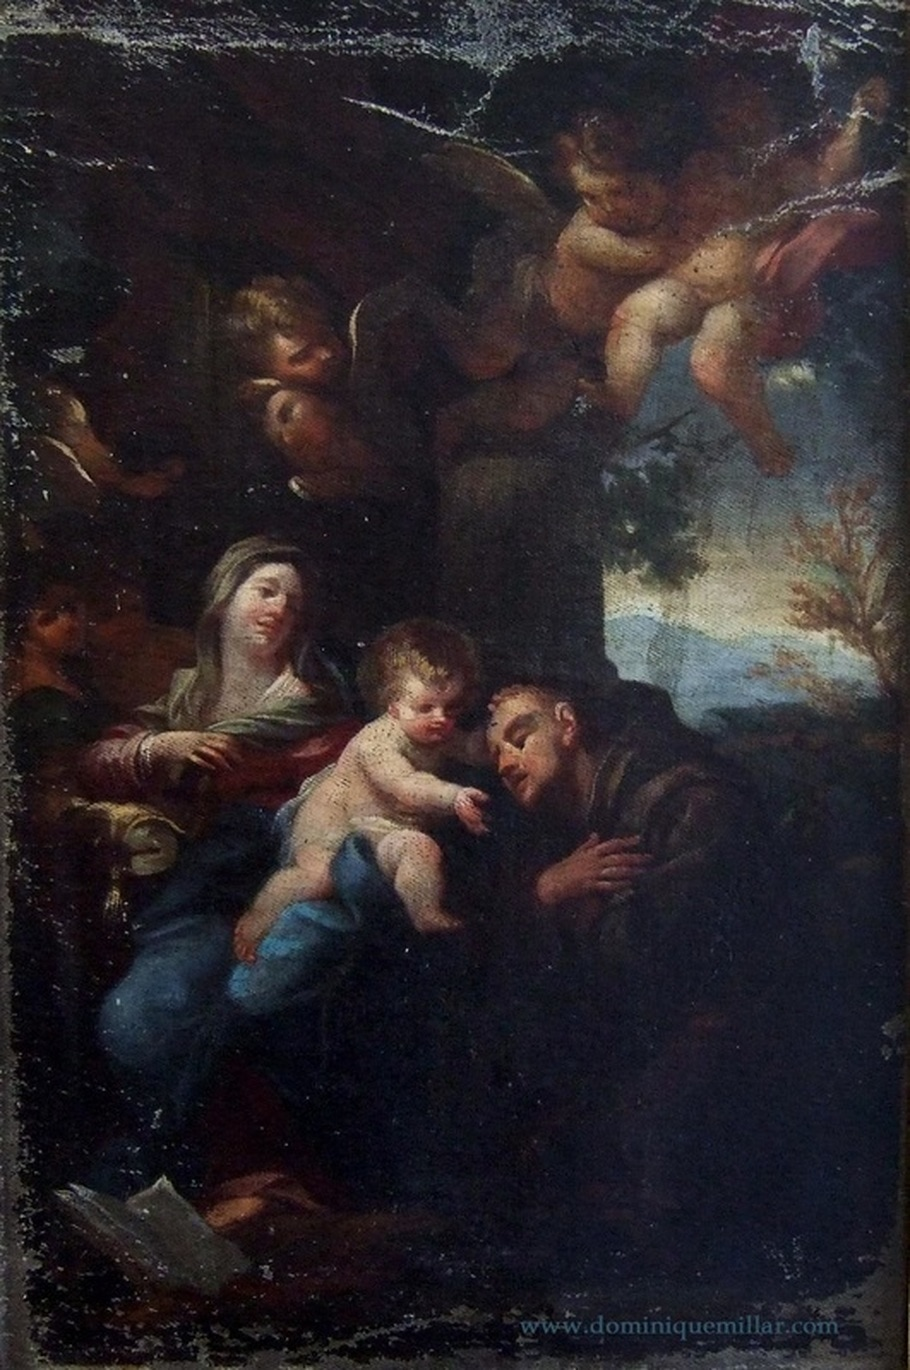 Dominique Millar's Collection, Artist: Carlo Maratta, Virgin and Child With St. Anthony of Padua